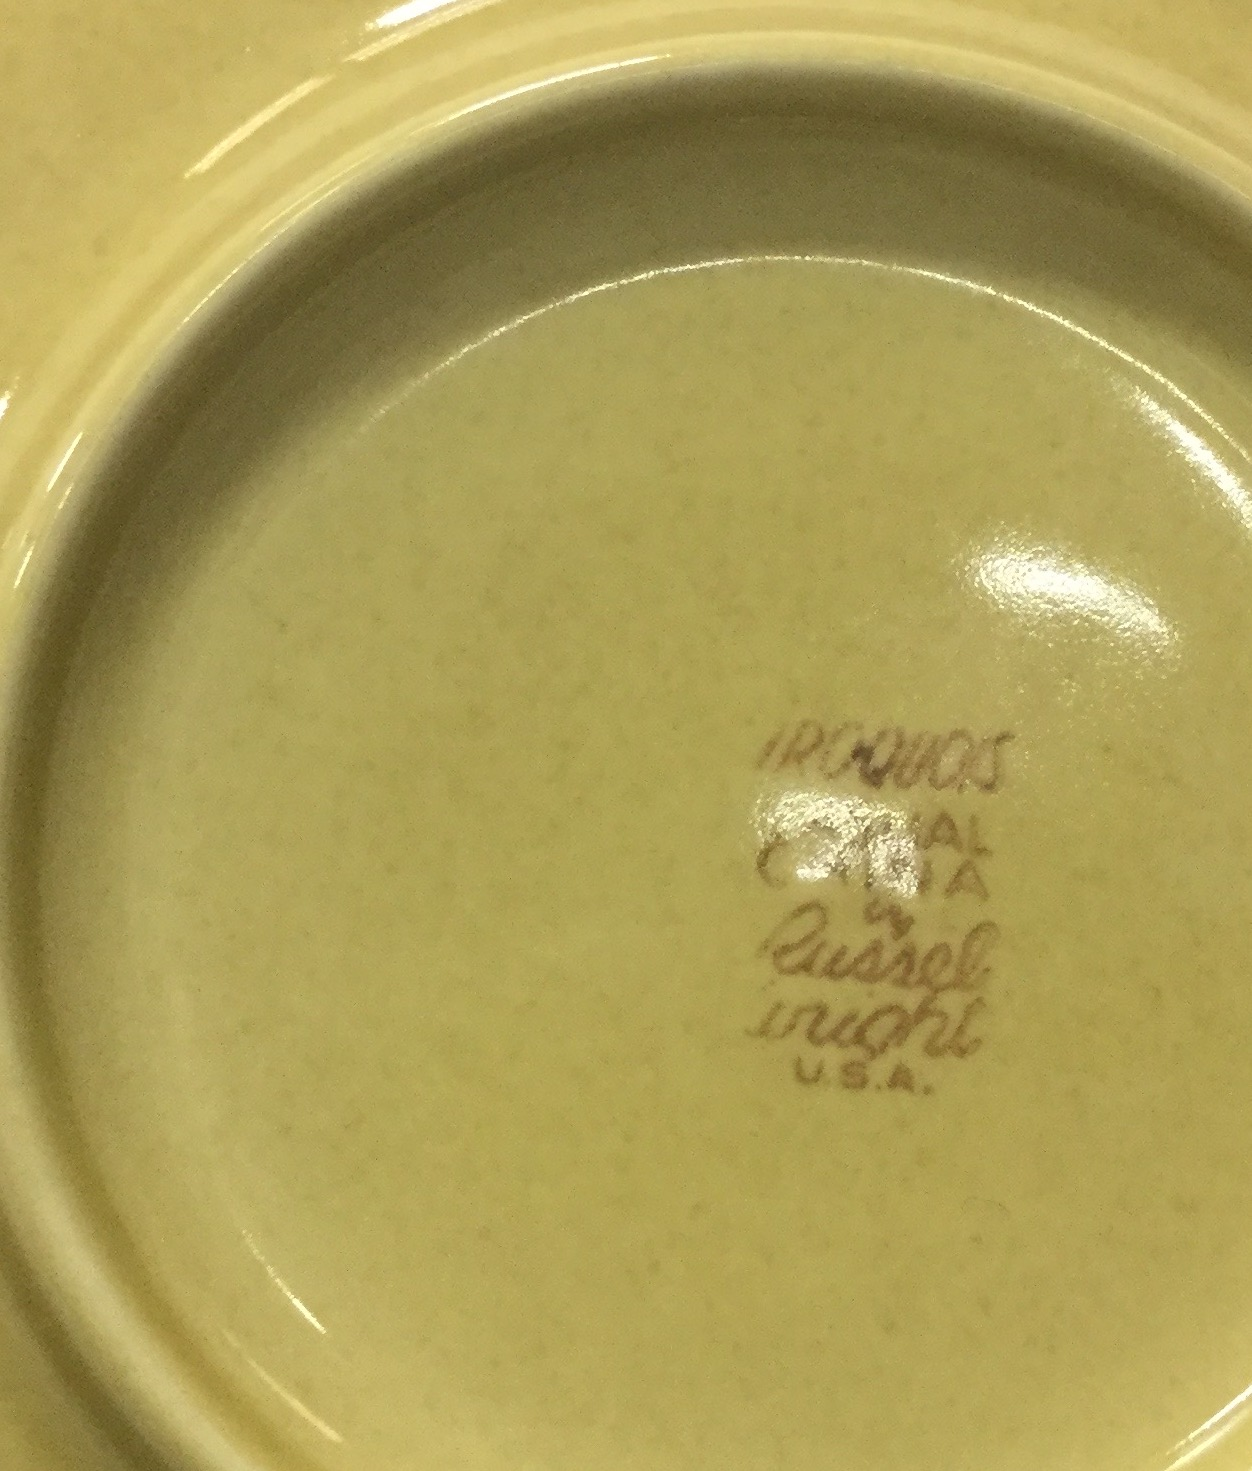 Russel-Wright-Cup--Saucer_58764F.jpg